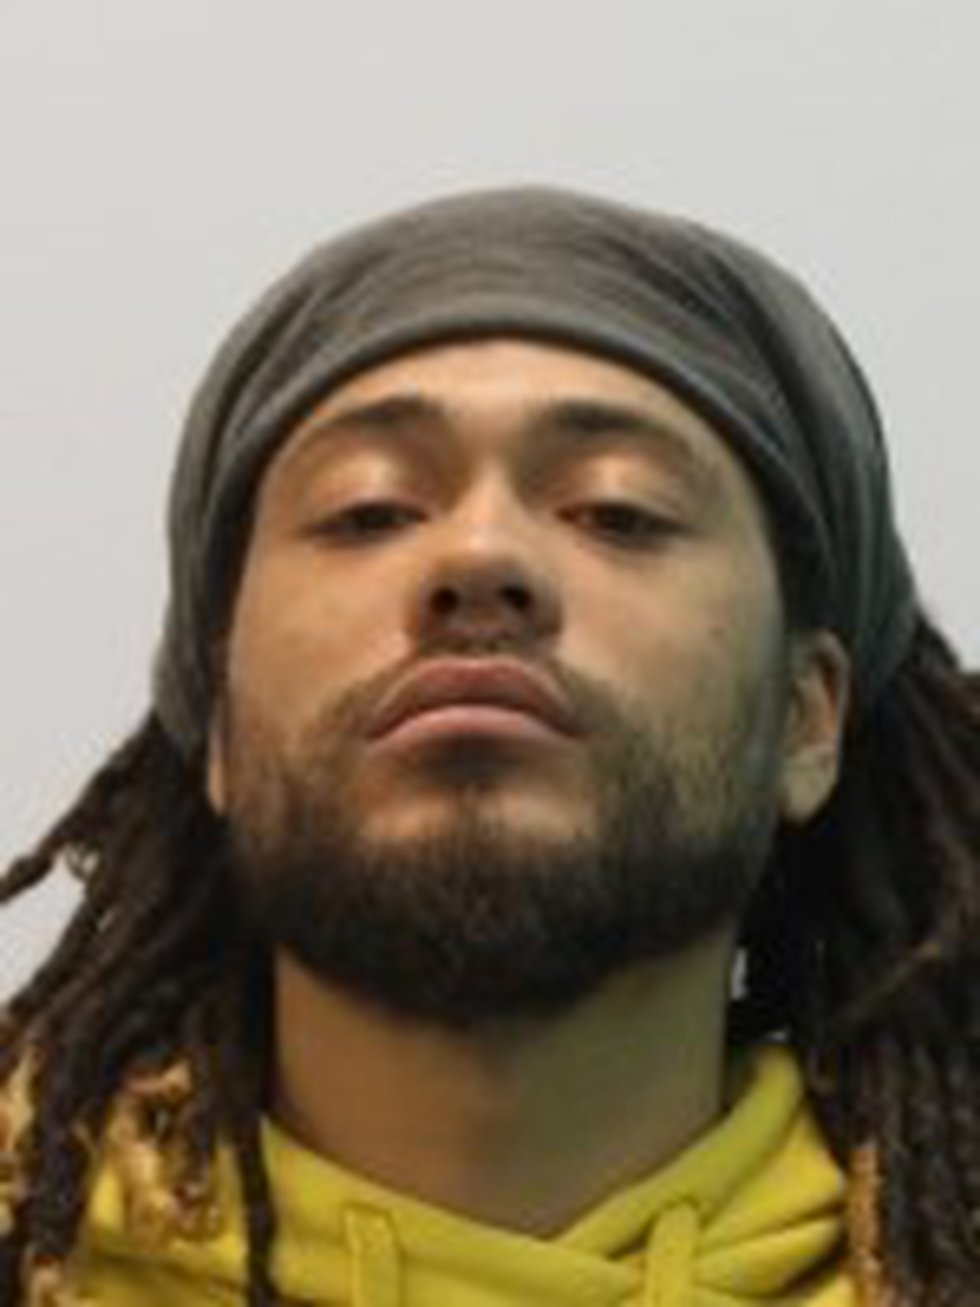 Rayshawn Hill, 29, of Akron was arrested for answering an on-line advertisement offering...